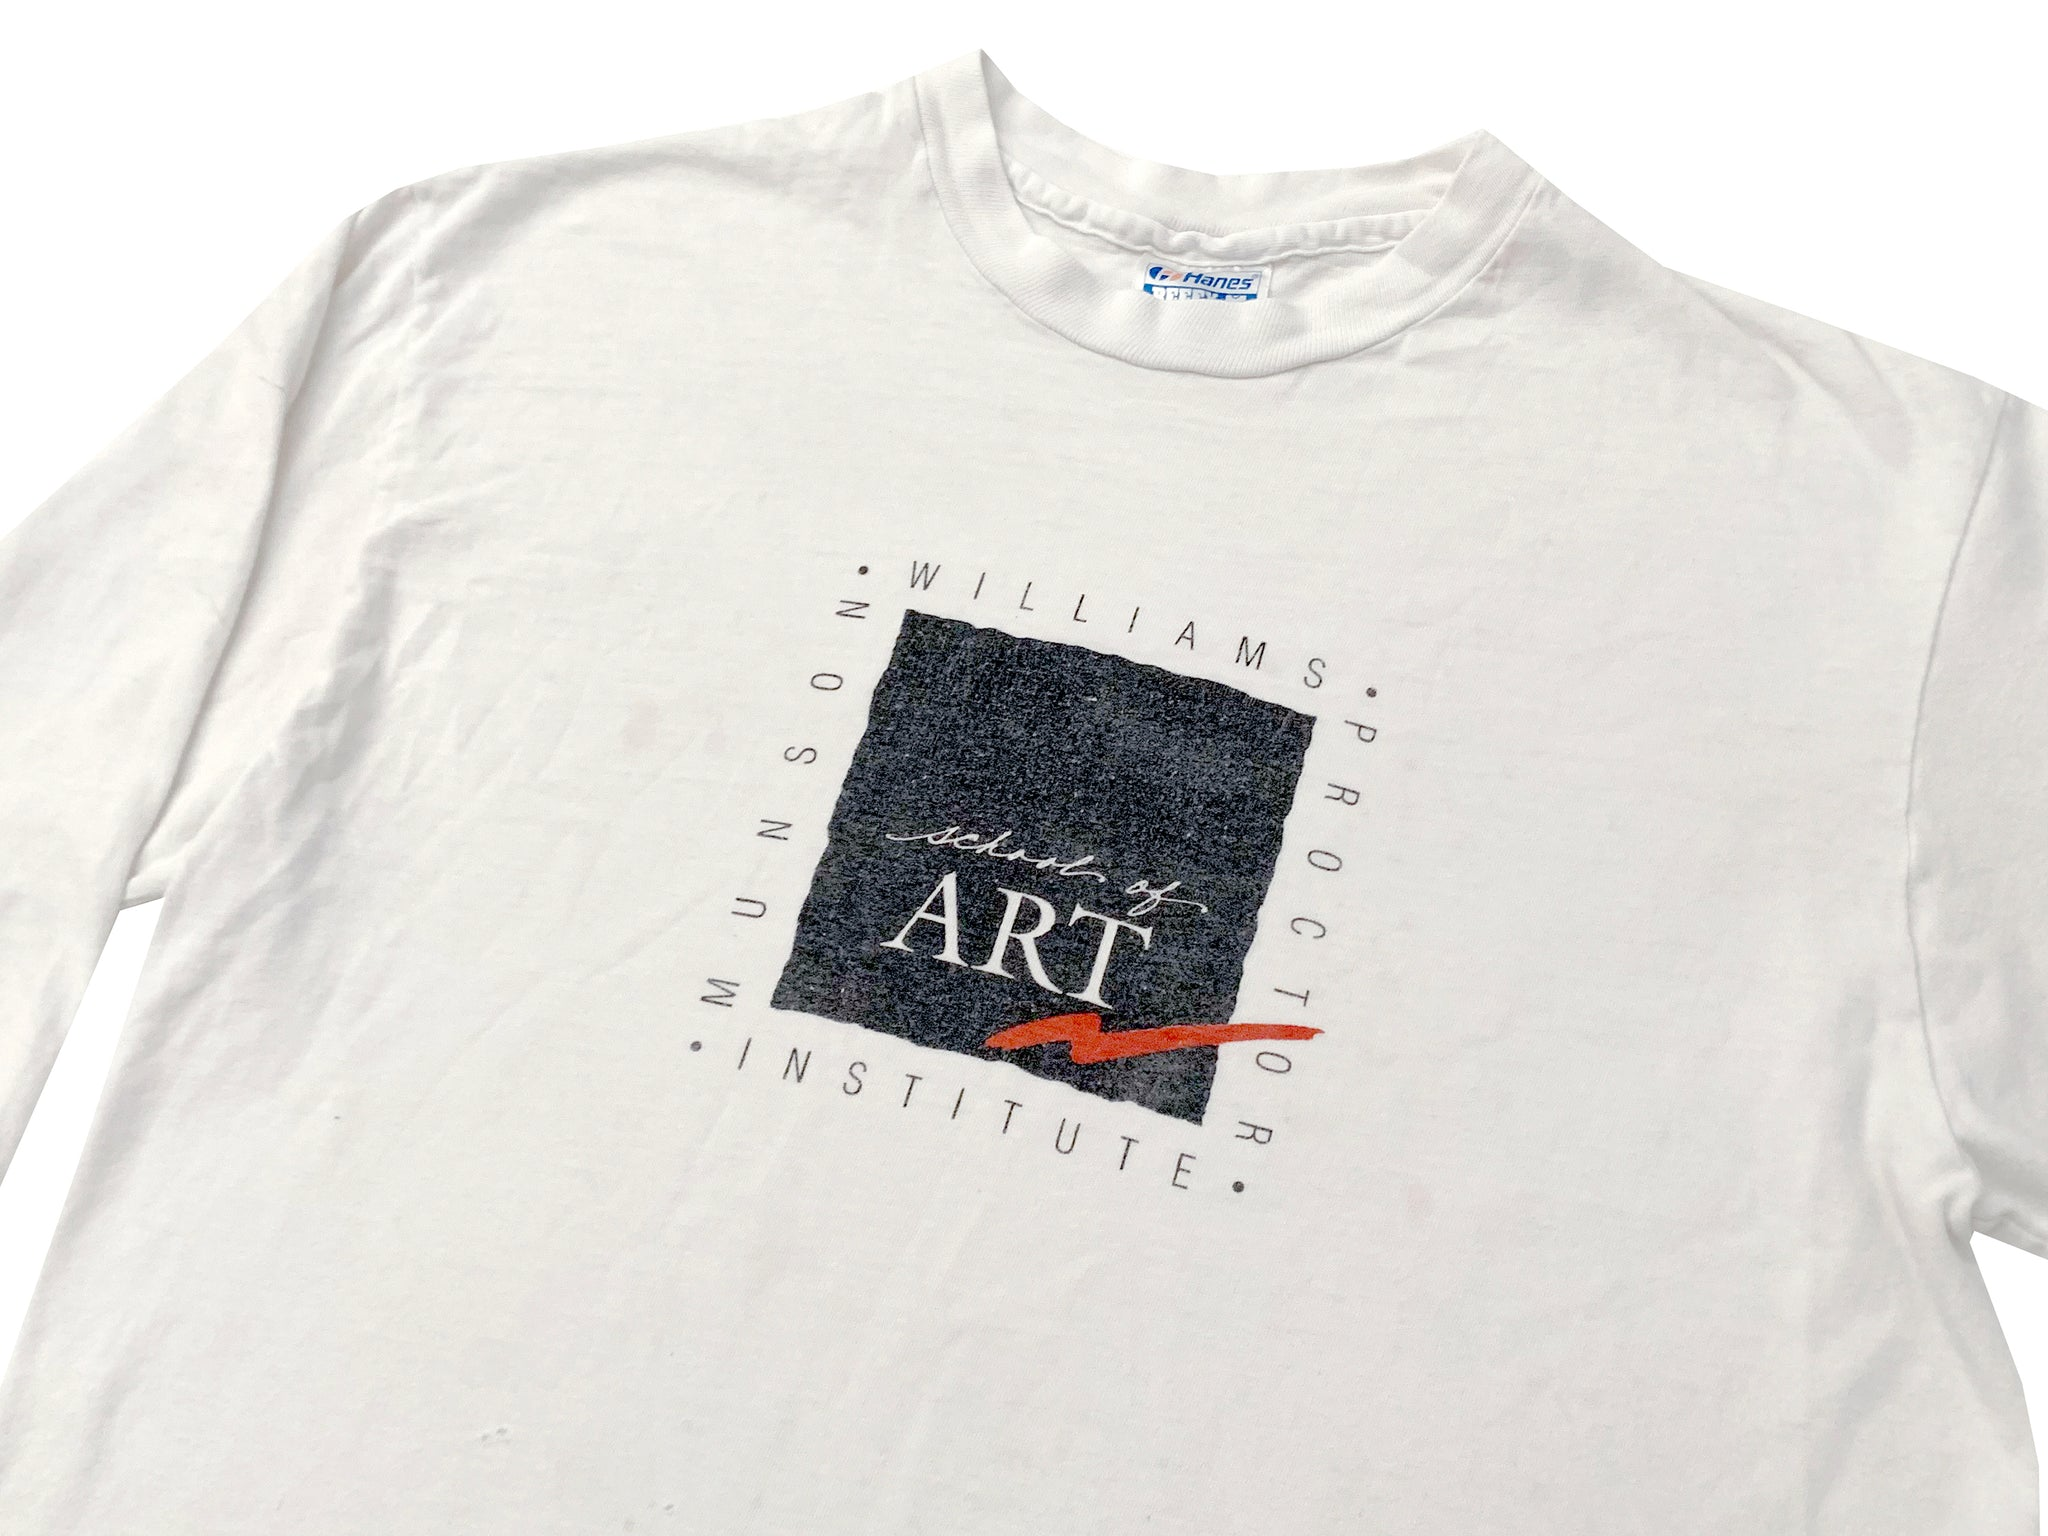 Munson Williams Proctor Art Institute L/S Shirt